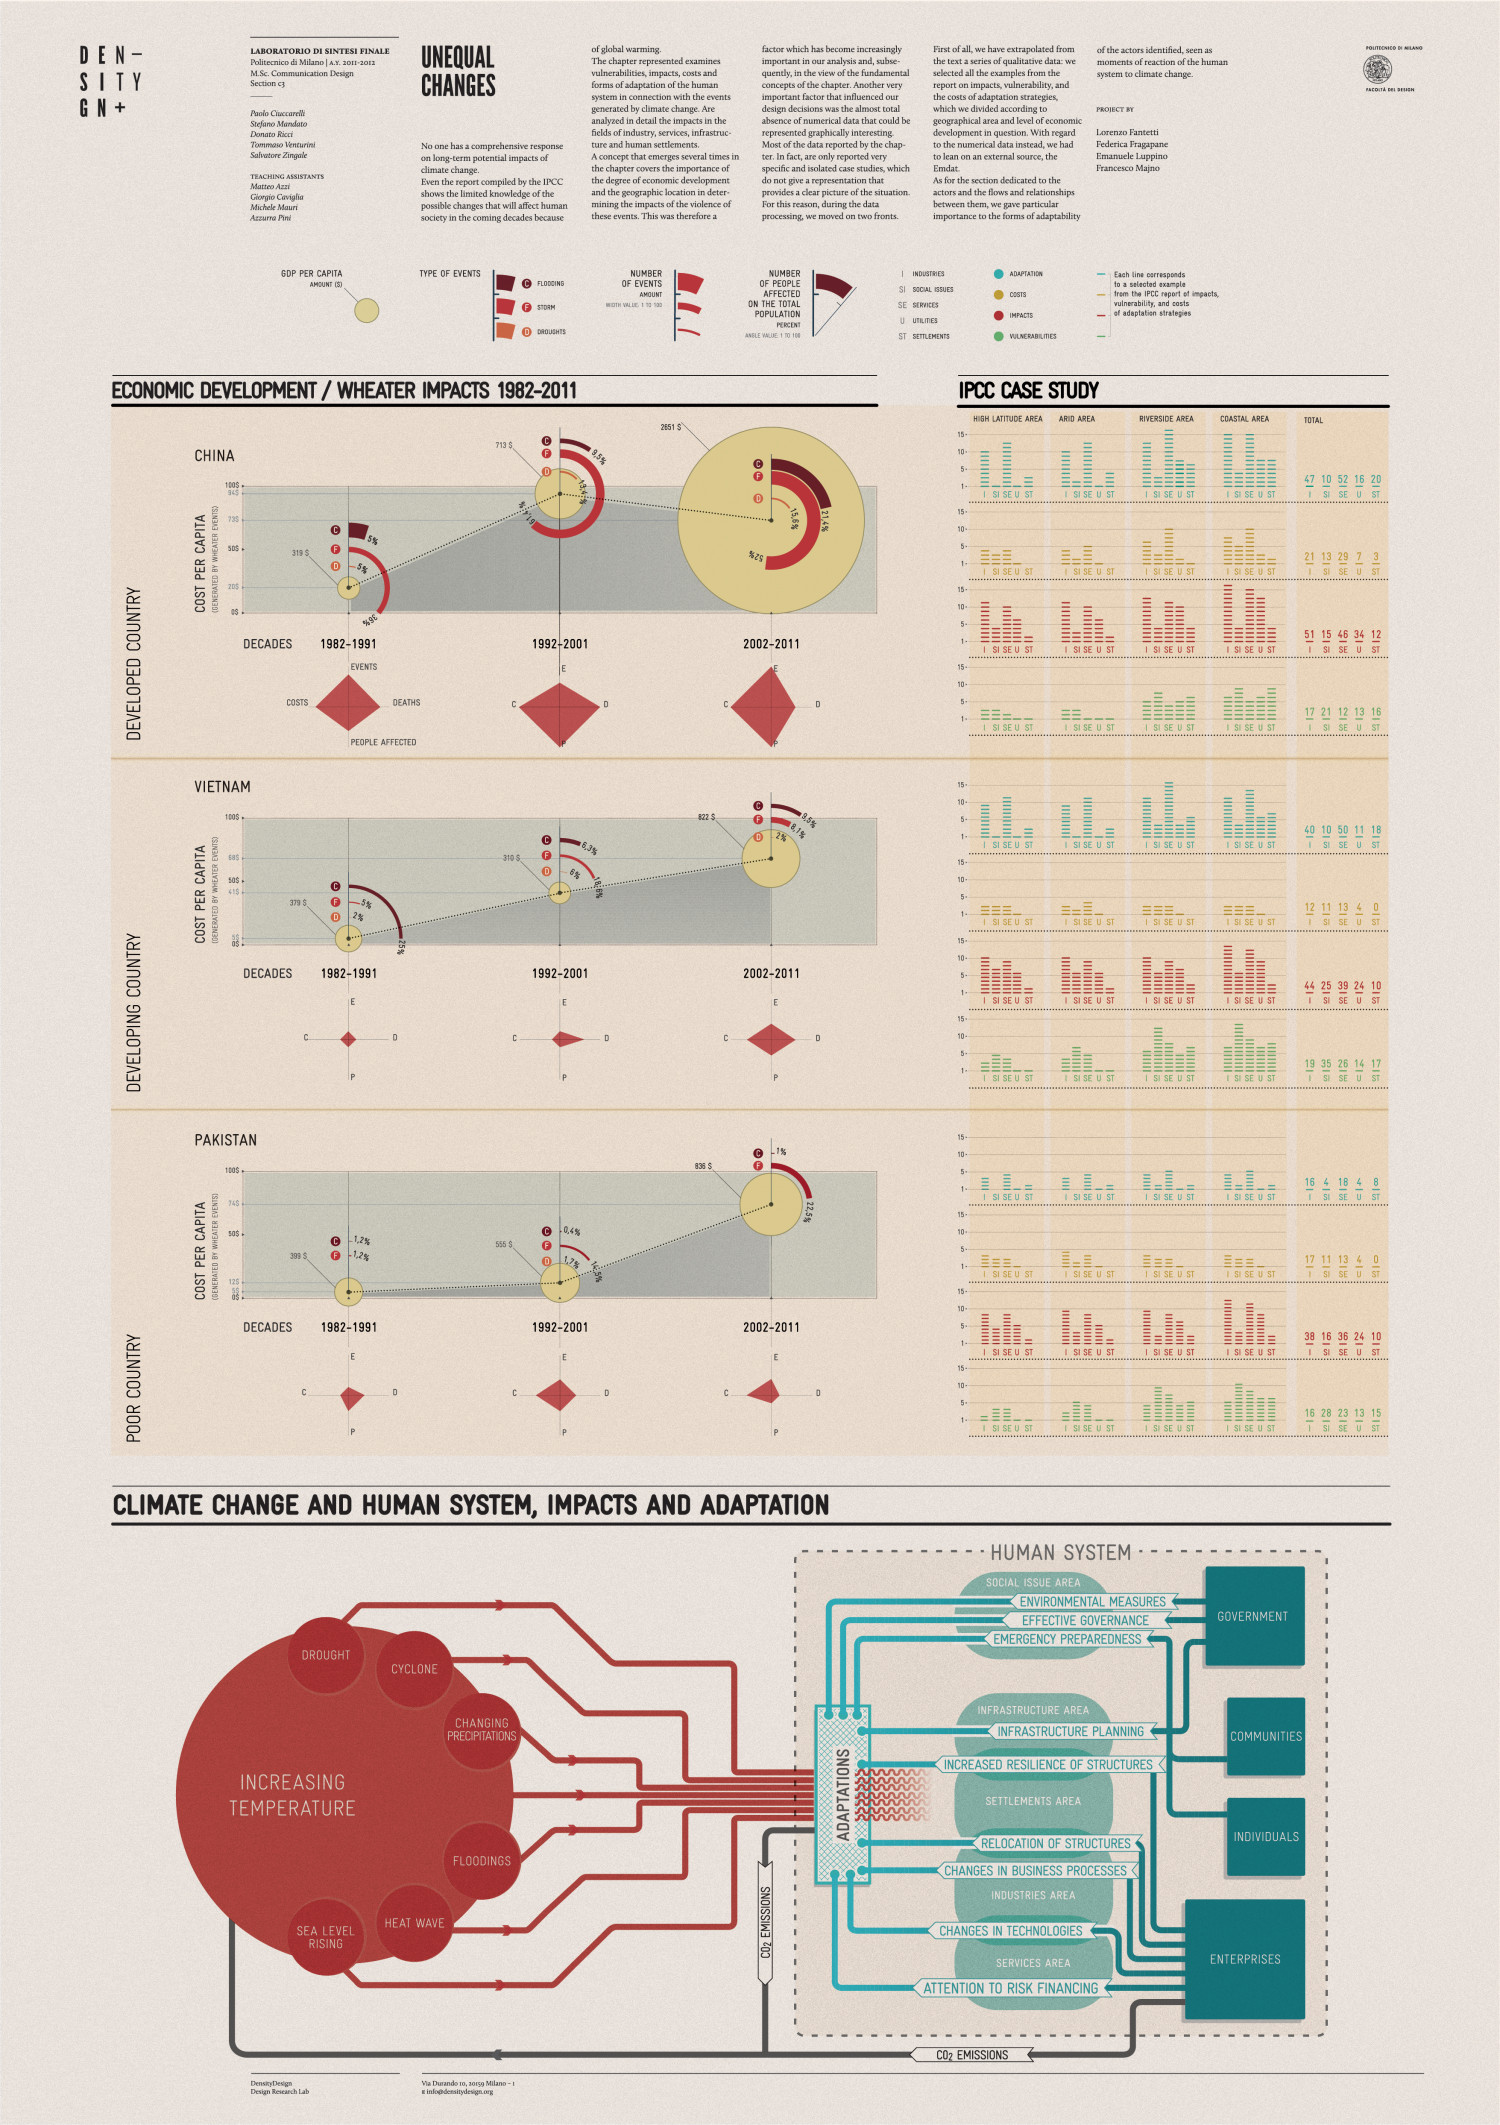 Unequal Changes Infographic